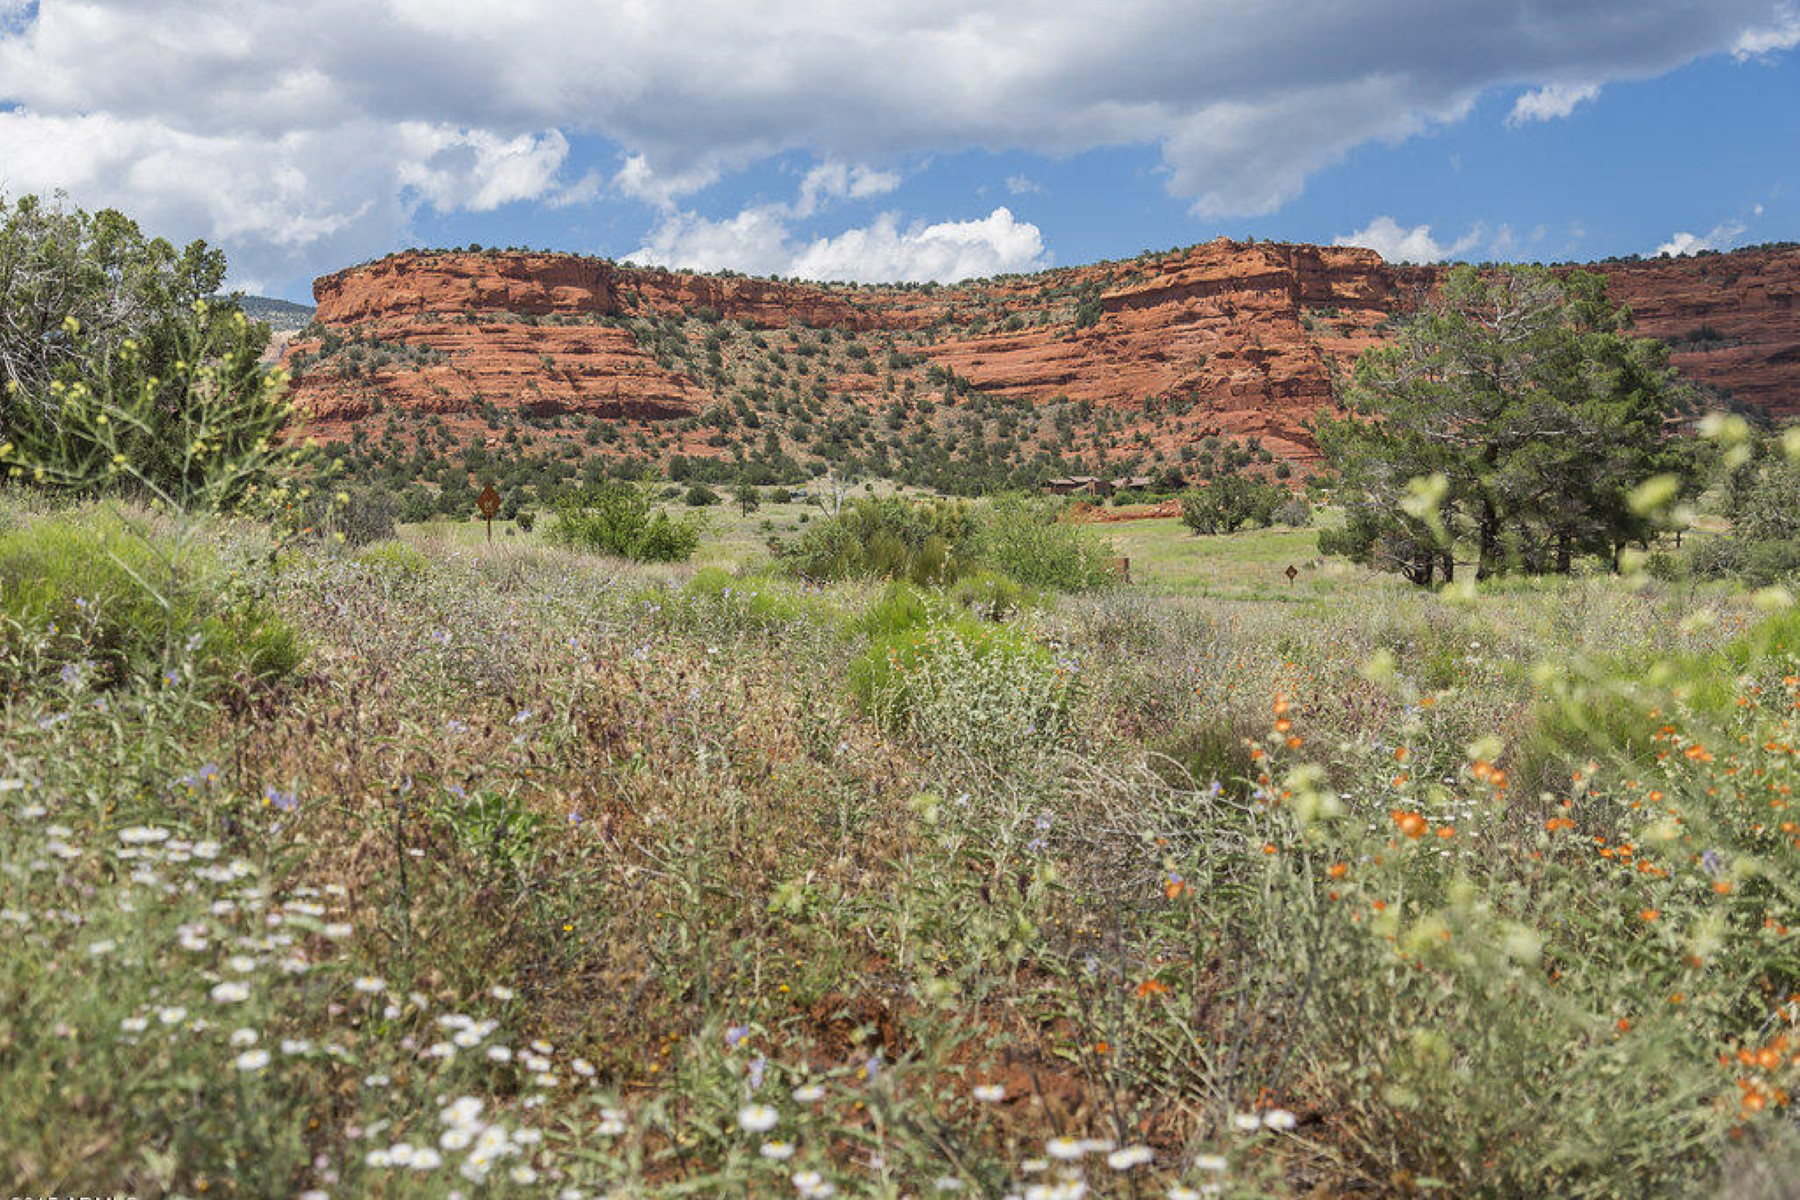 Terreno por un Venta en Aerie Lot 29 - Stunnig 2.59 acre parcel with expansive views of Sedona red rock. 360 Aerie RD 29 Sedona, Arizona, 86336 Estados Unidos